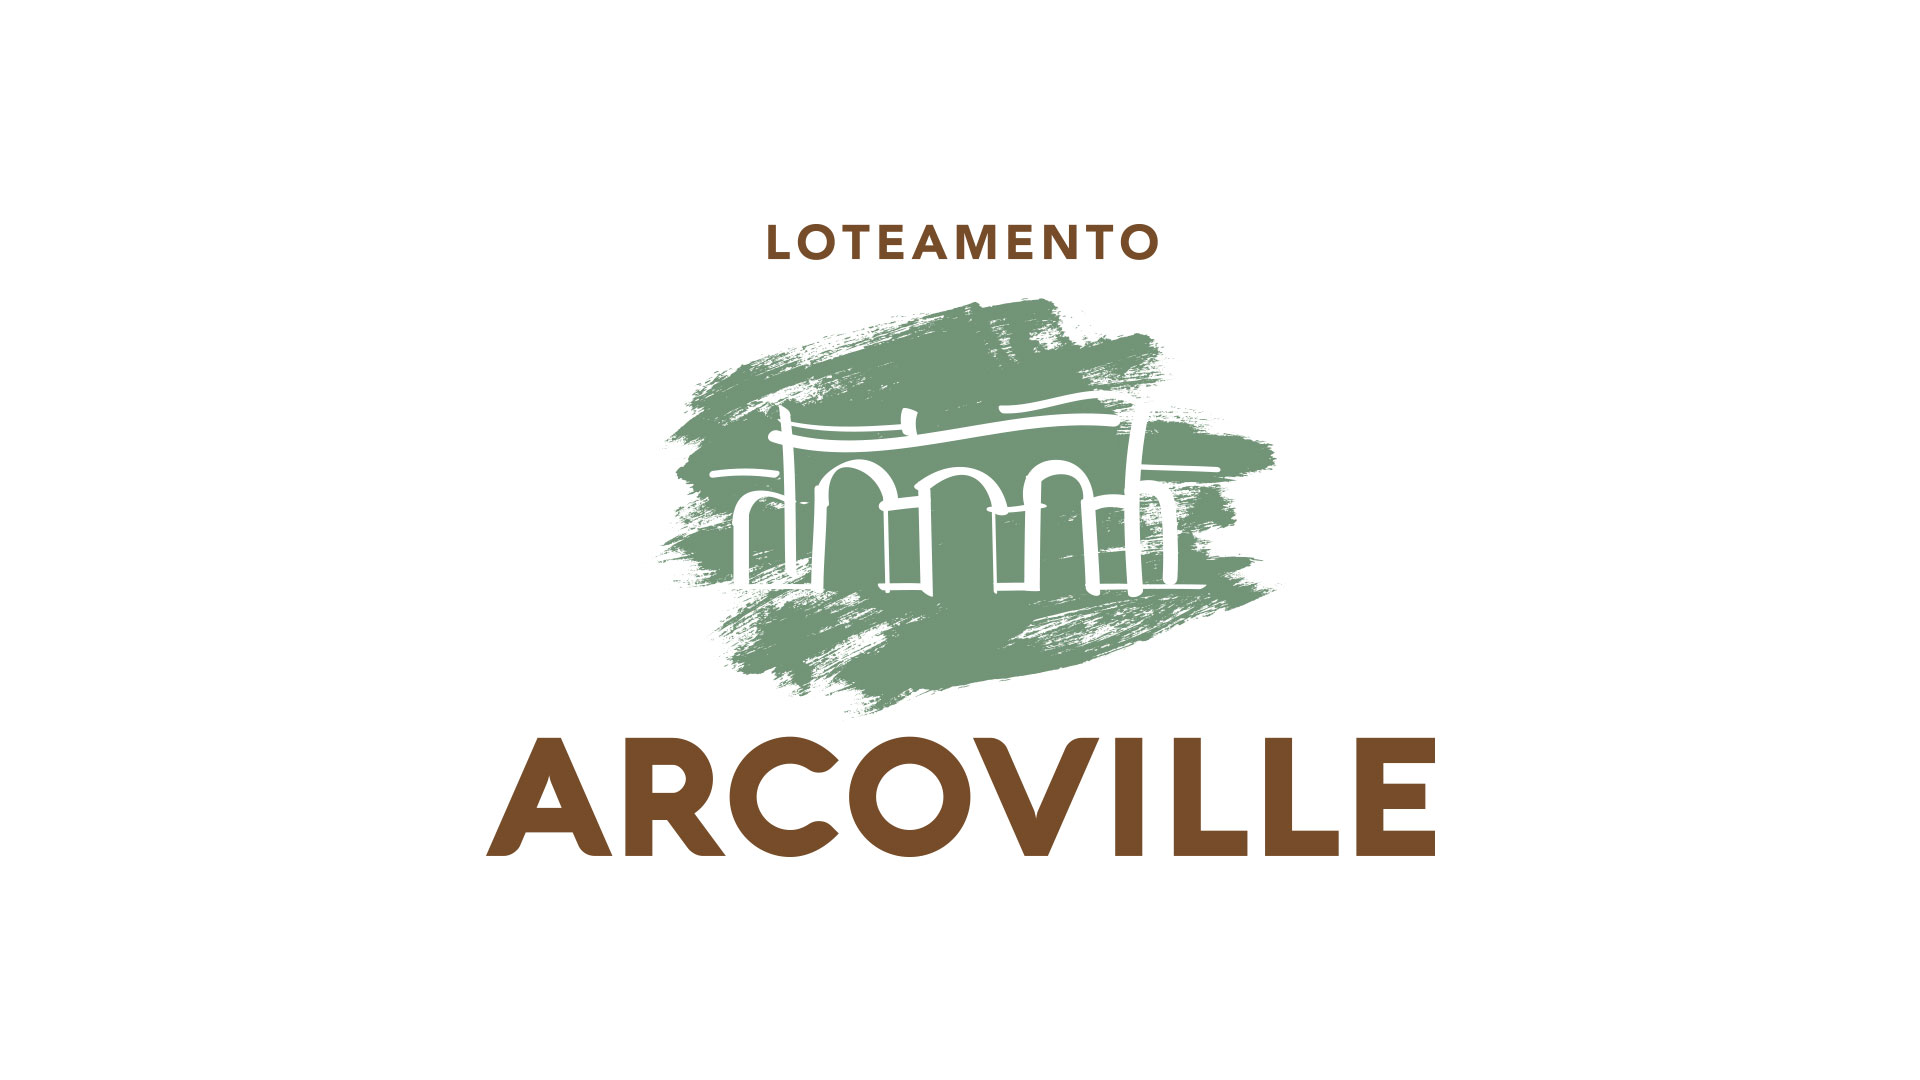 RESIDENCIAL ARCOVILLE